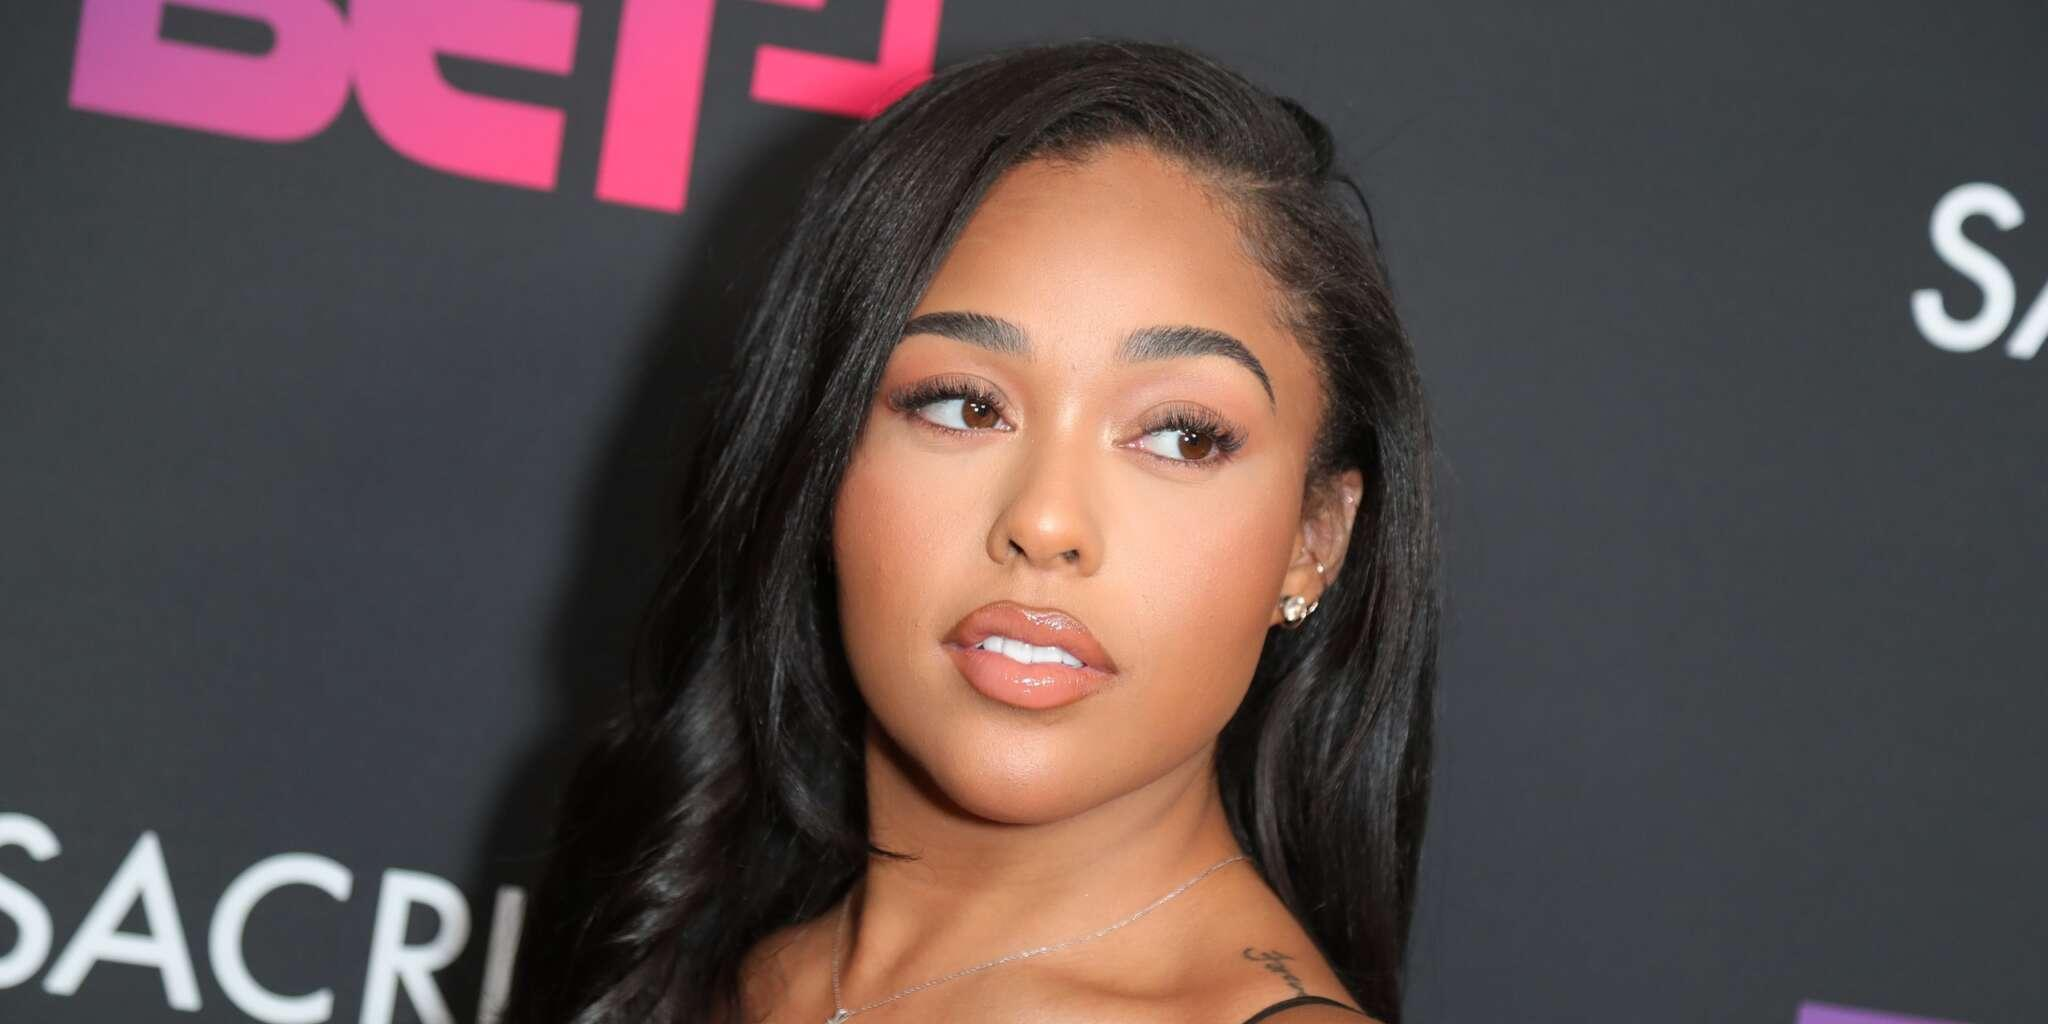 Jordyn Woods Shows Off The Gifts She Received From Her BF, Karl Anthony Towns